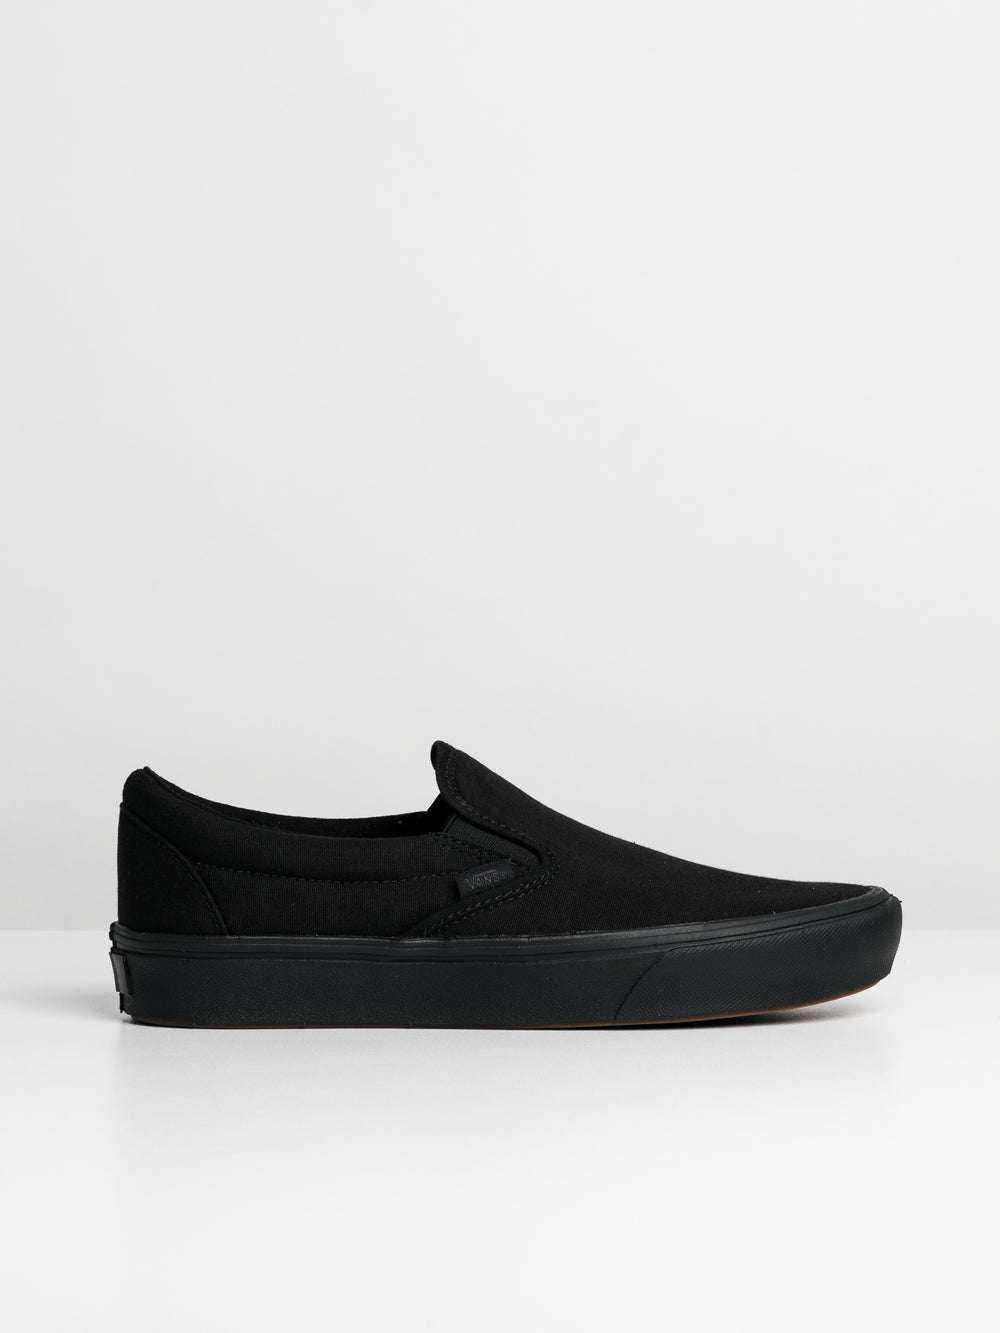 MENS COMFYCUSH SLIP ON - BLACK